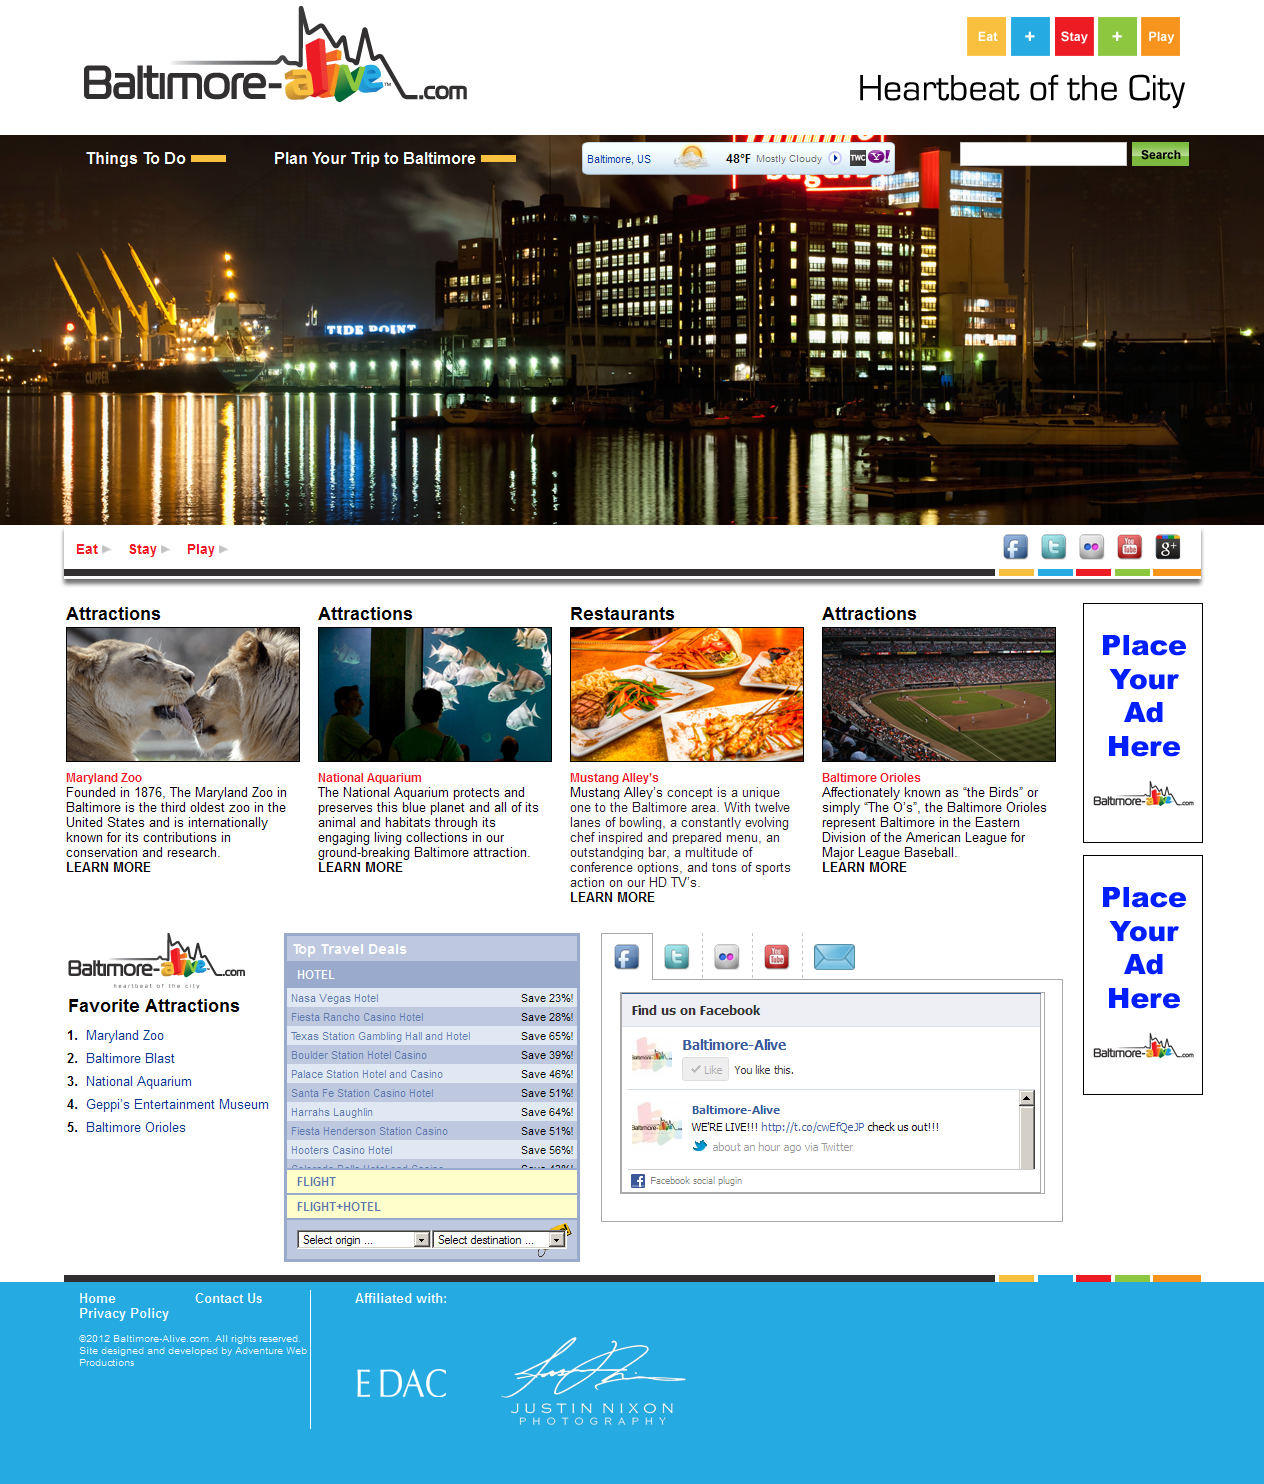 Adventure Web Productions has recently launched Baltimore Alive 's new live site!